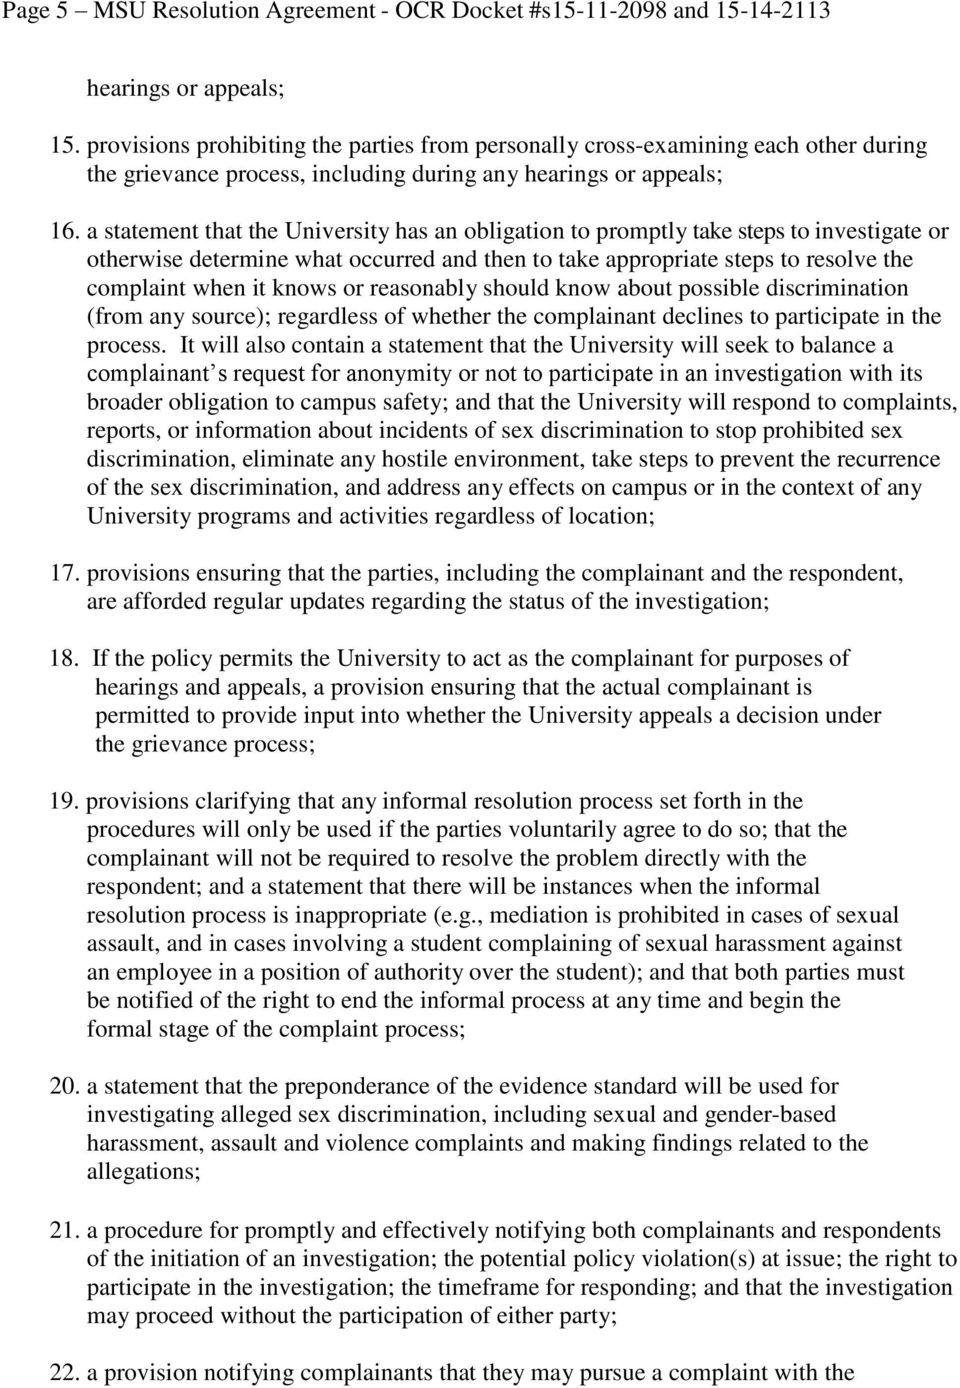 a statement that the University has an obligation to promptly take steps to investigate or otherwise determine what occurred and then to take appropriate steps to resolve the complaint when it knows